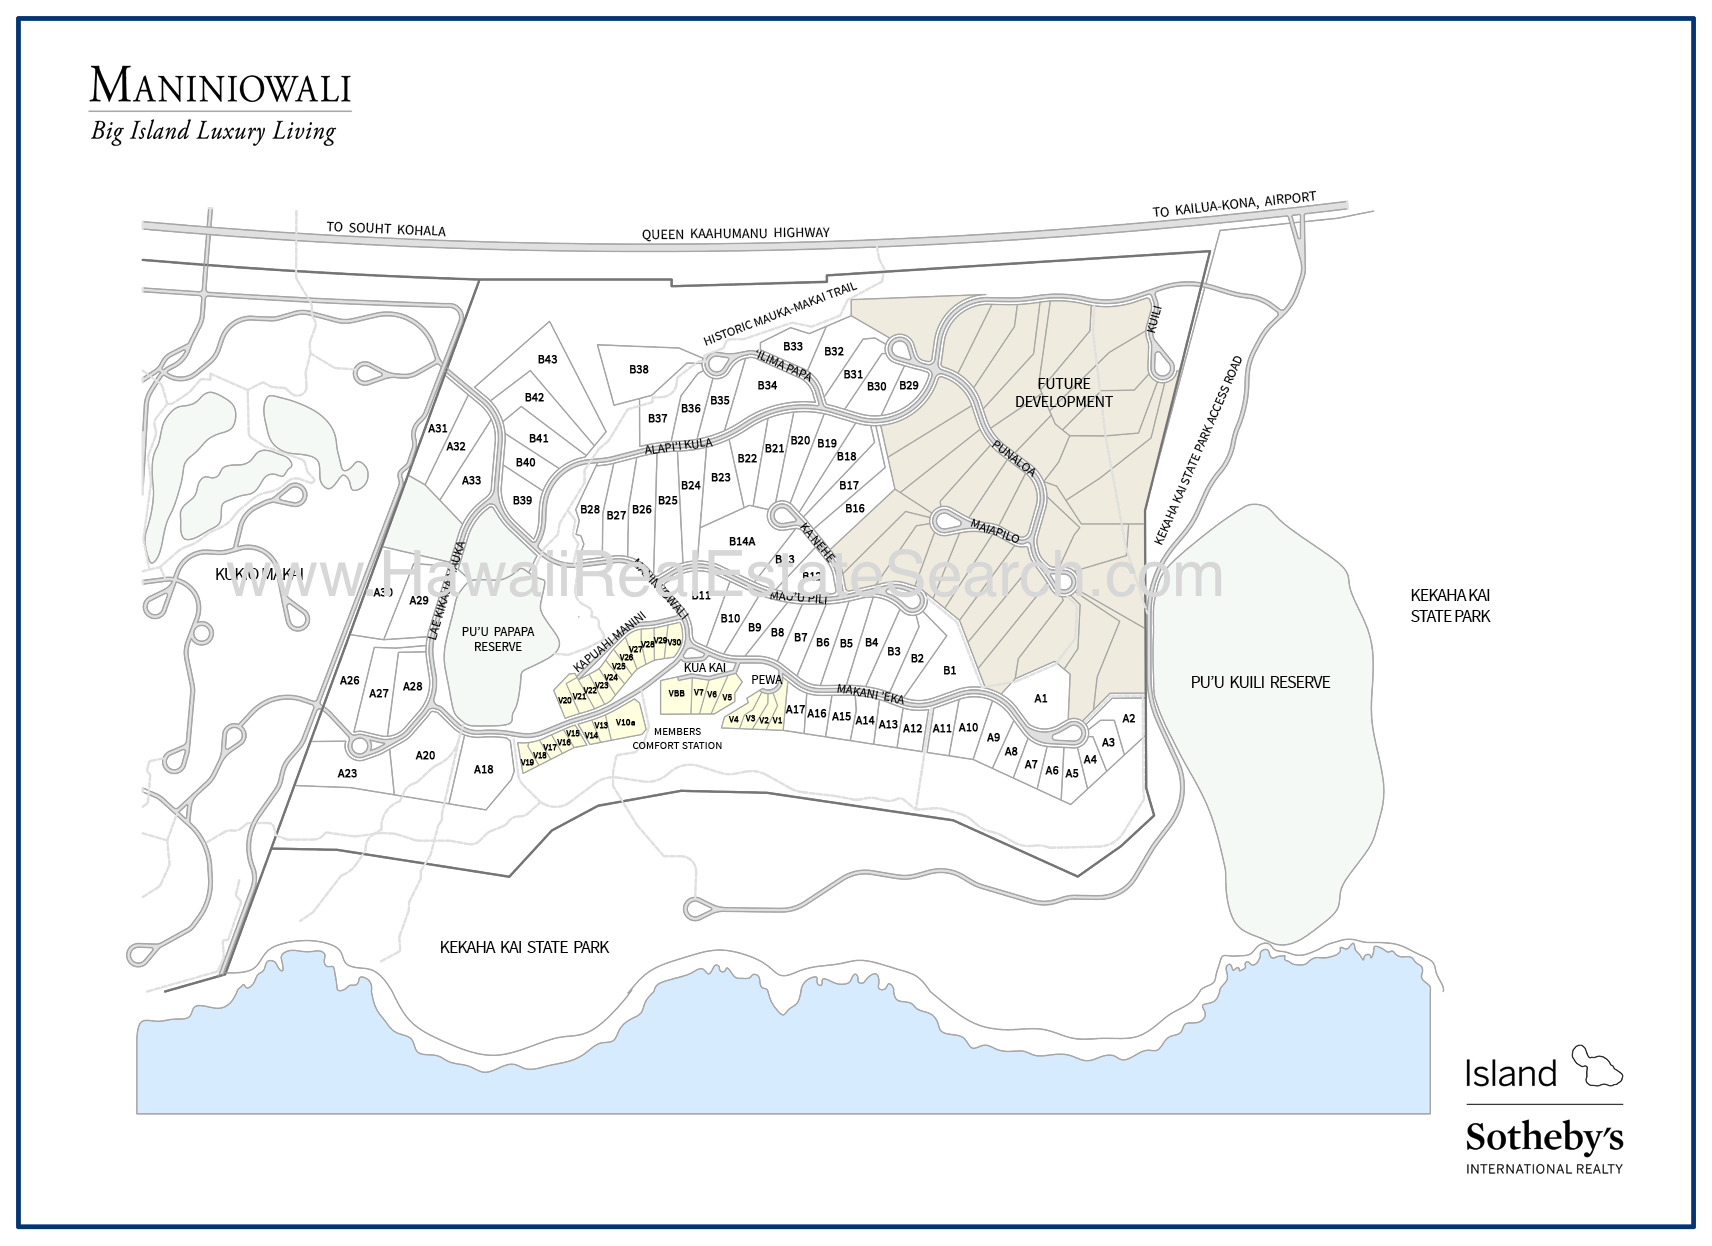 maniniowali subdivision map on kona, hawaii